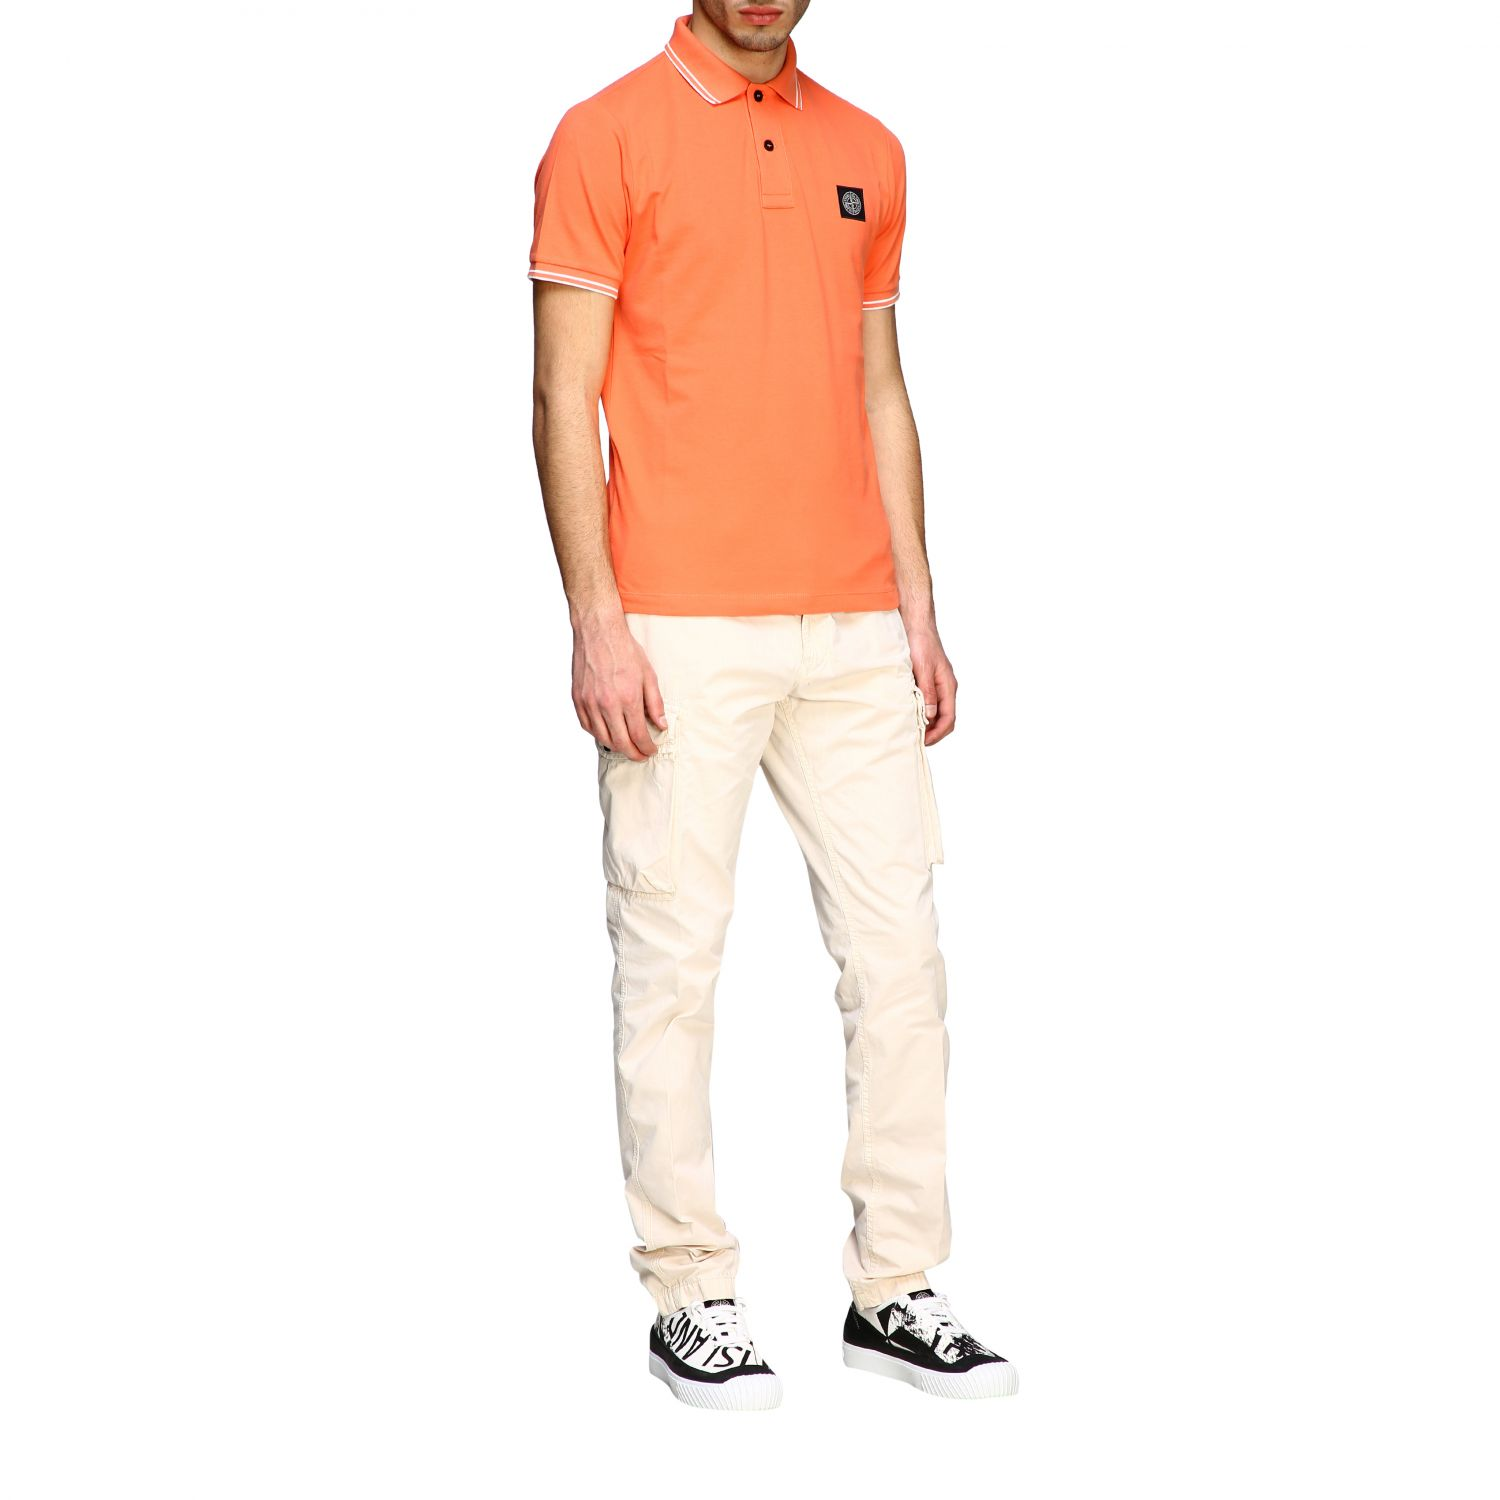 T-shirt men Stone Island orange 2